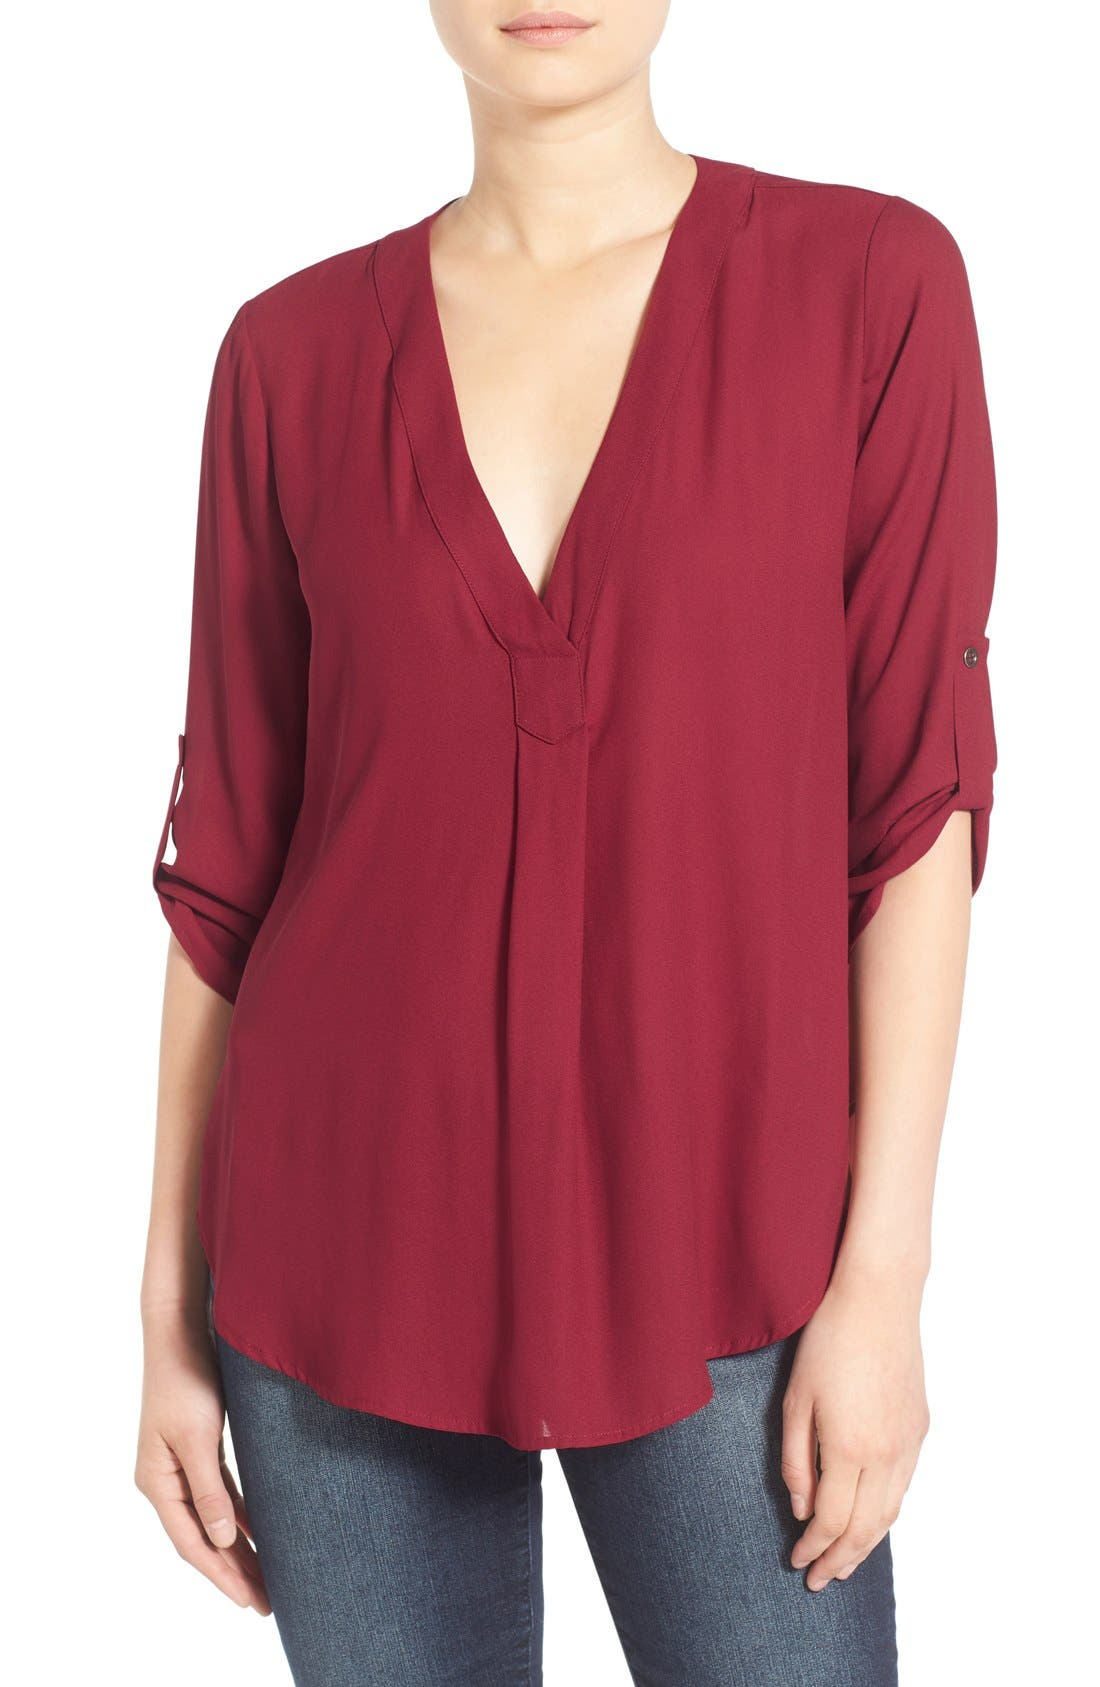 Alternate Image 1 Selected - Lush V-Neck Crepe Blouse